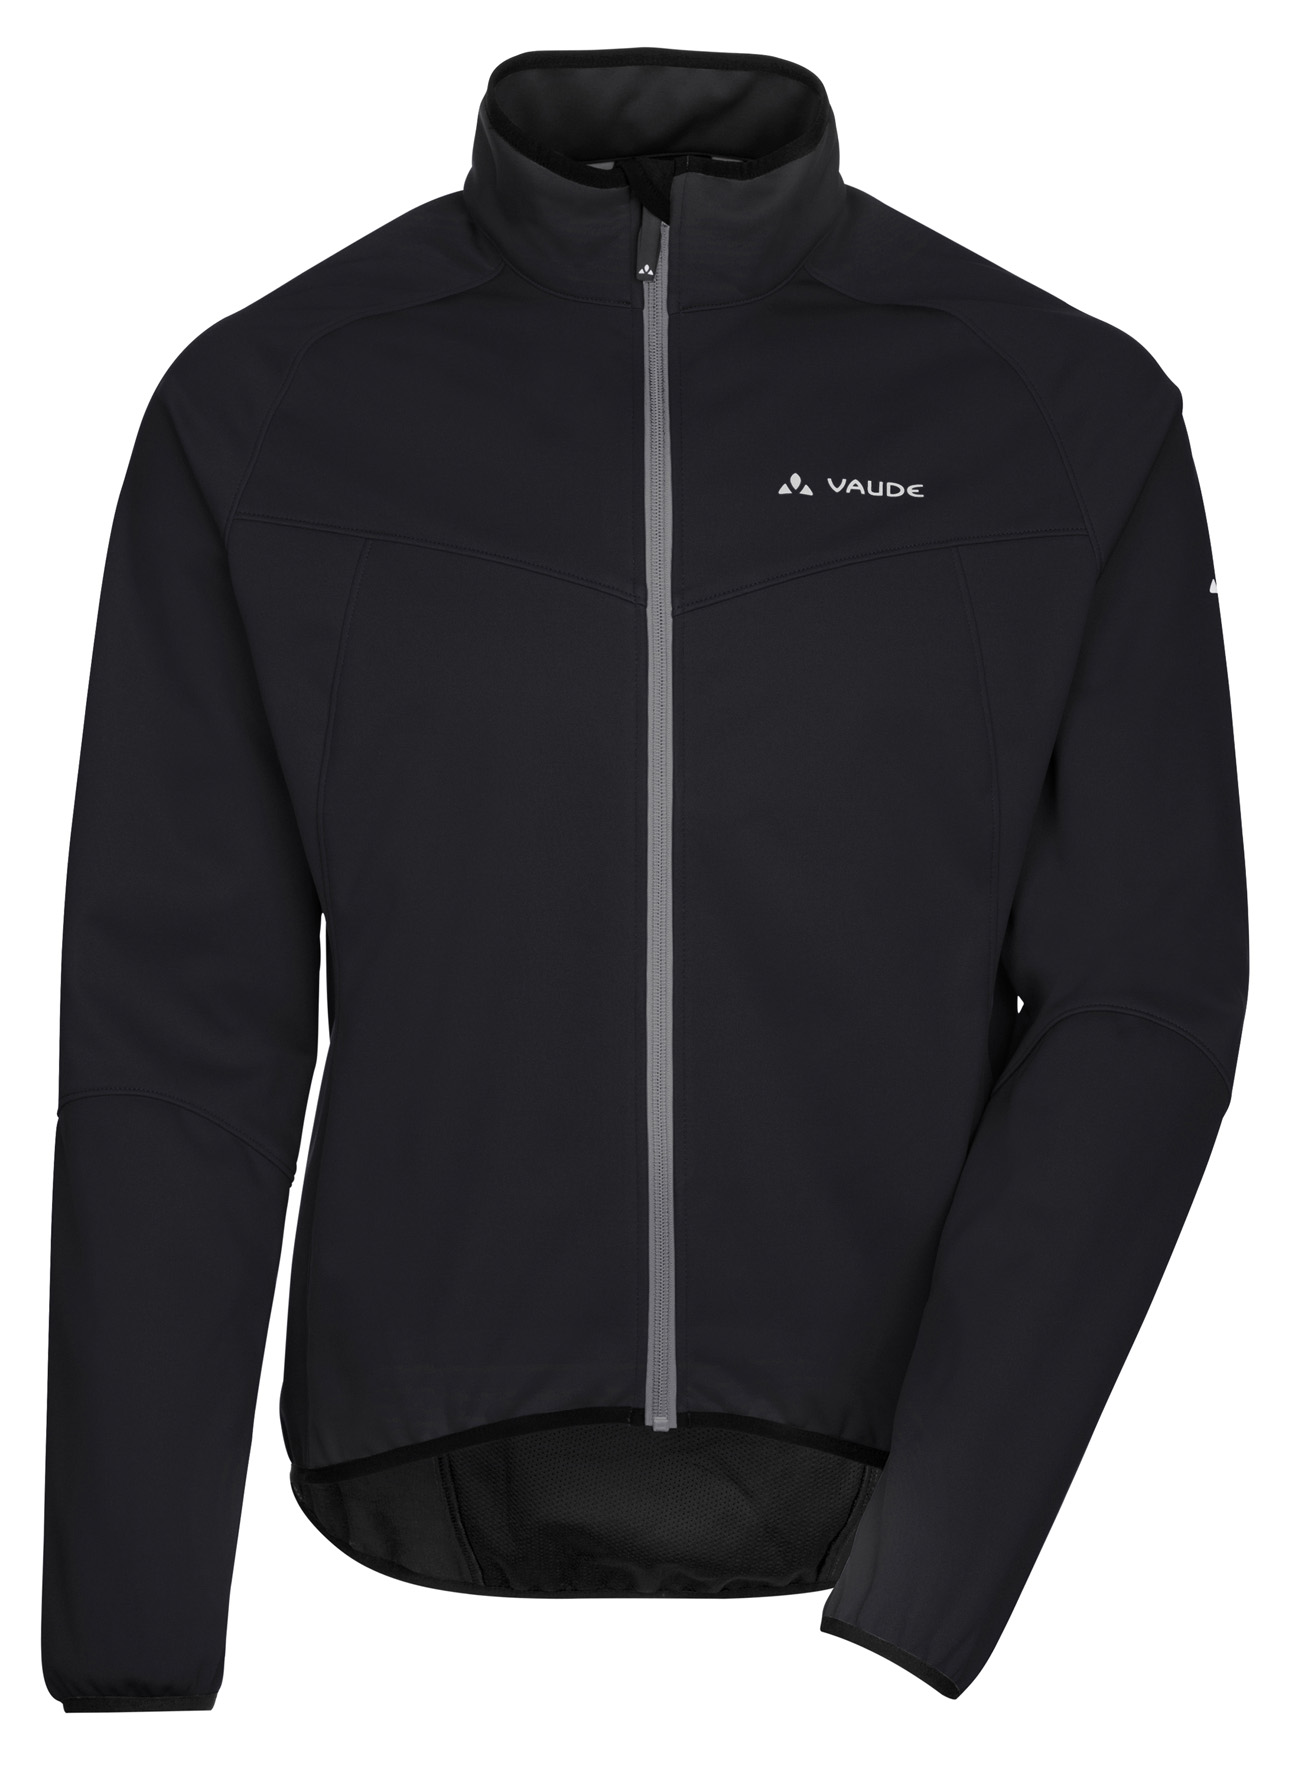 VAUDE Men´s Matera Softshell Jacket II black Größe S - schneider-sports